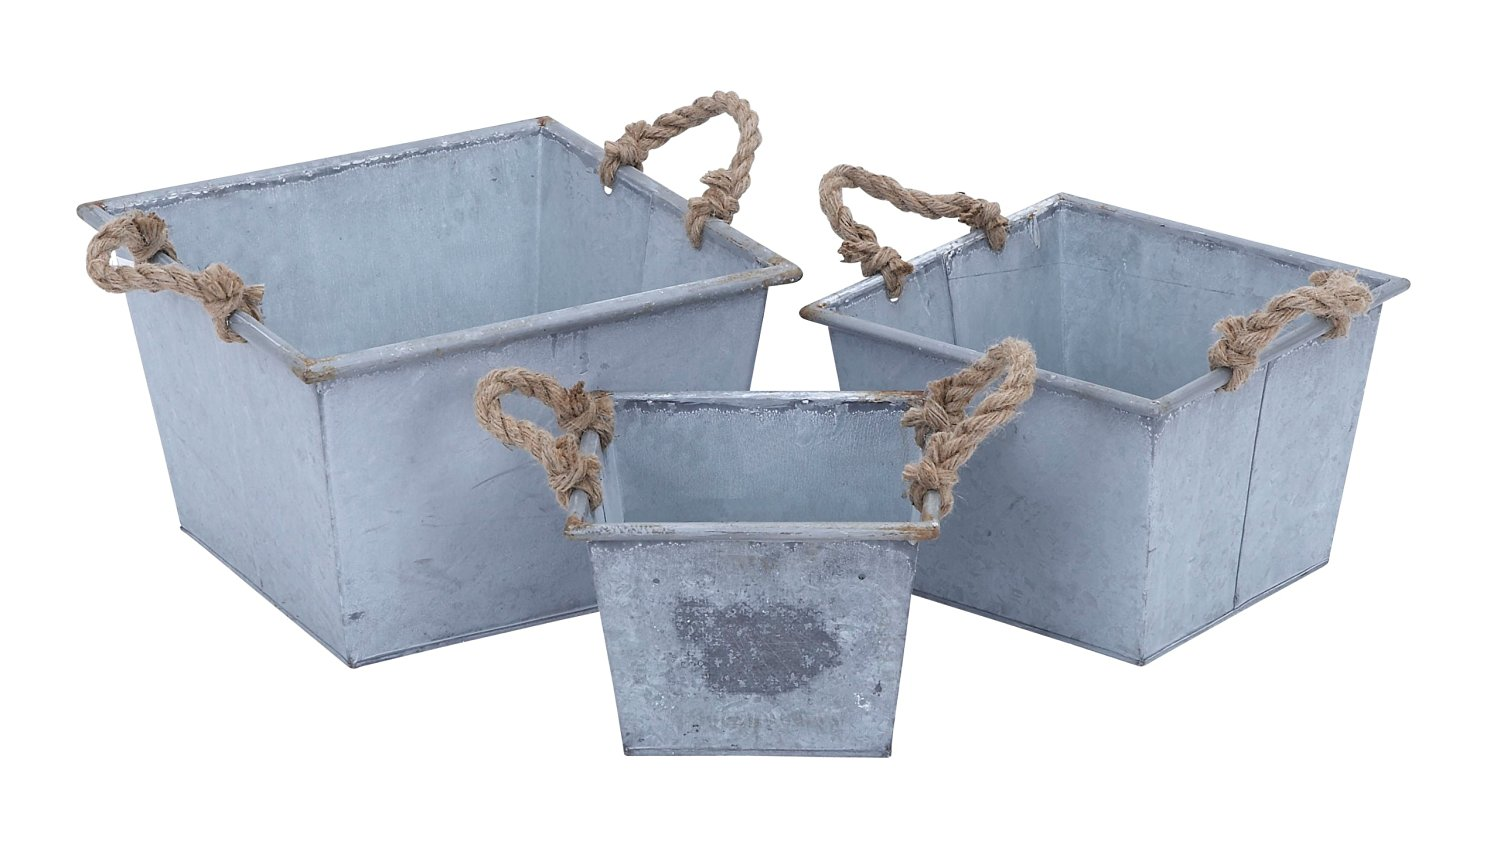 Plutus Brands Planter Designed with Rope Handles, Set of 3